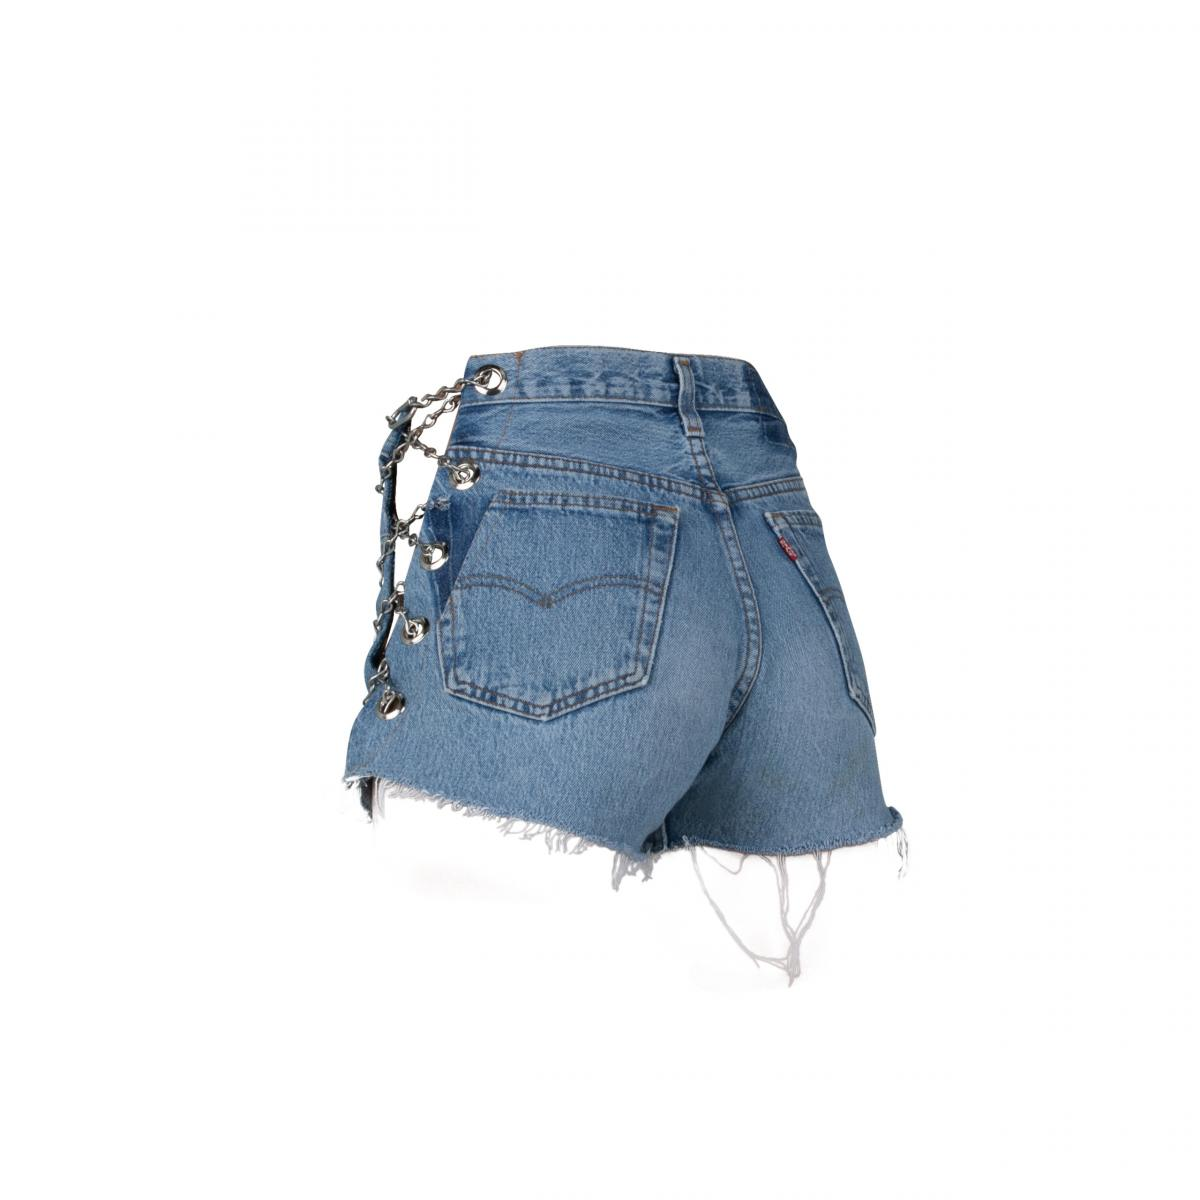 Vintage Blue Chain Shorts by EB Denim, available on ebdenim.com for $215 Hailey Baldwin Shorts SIMILAR PRODUCT